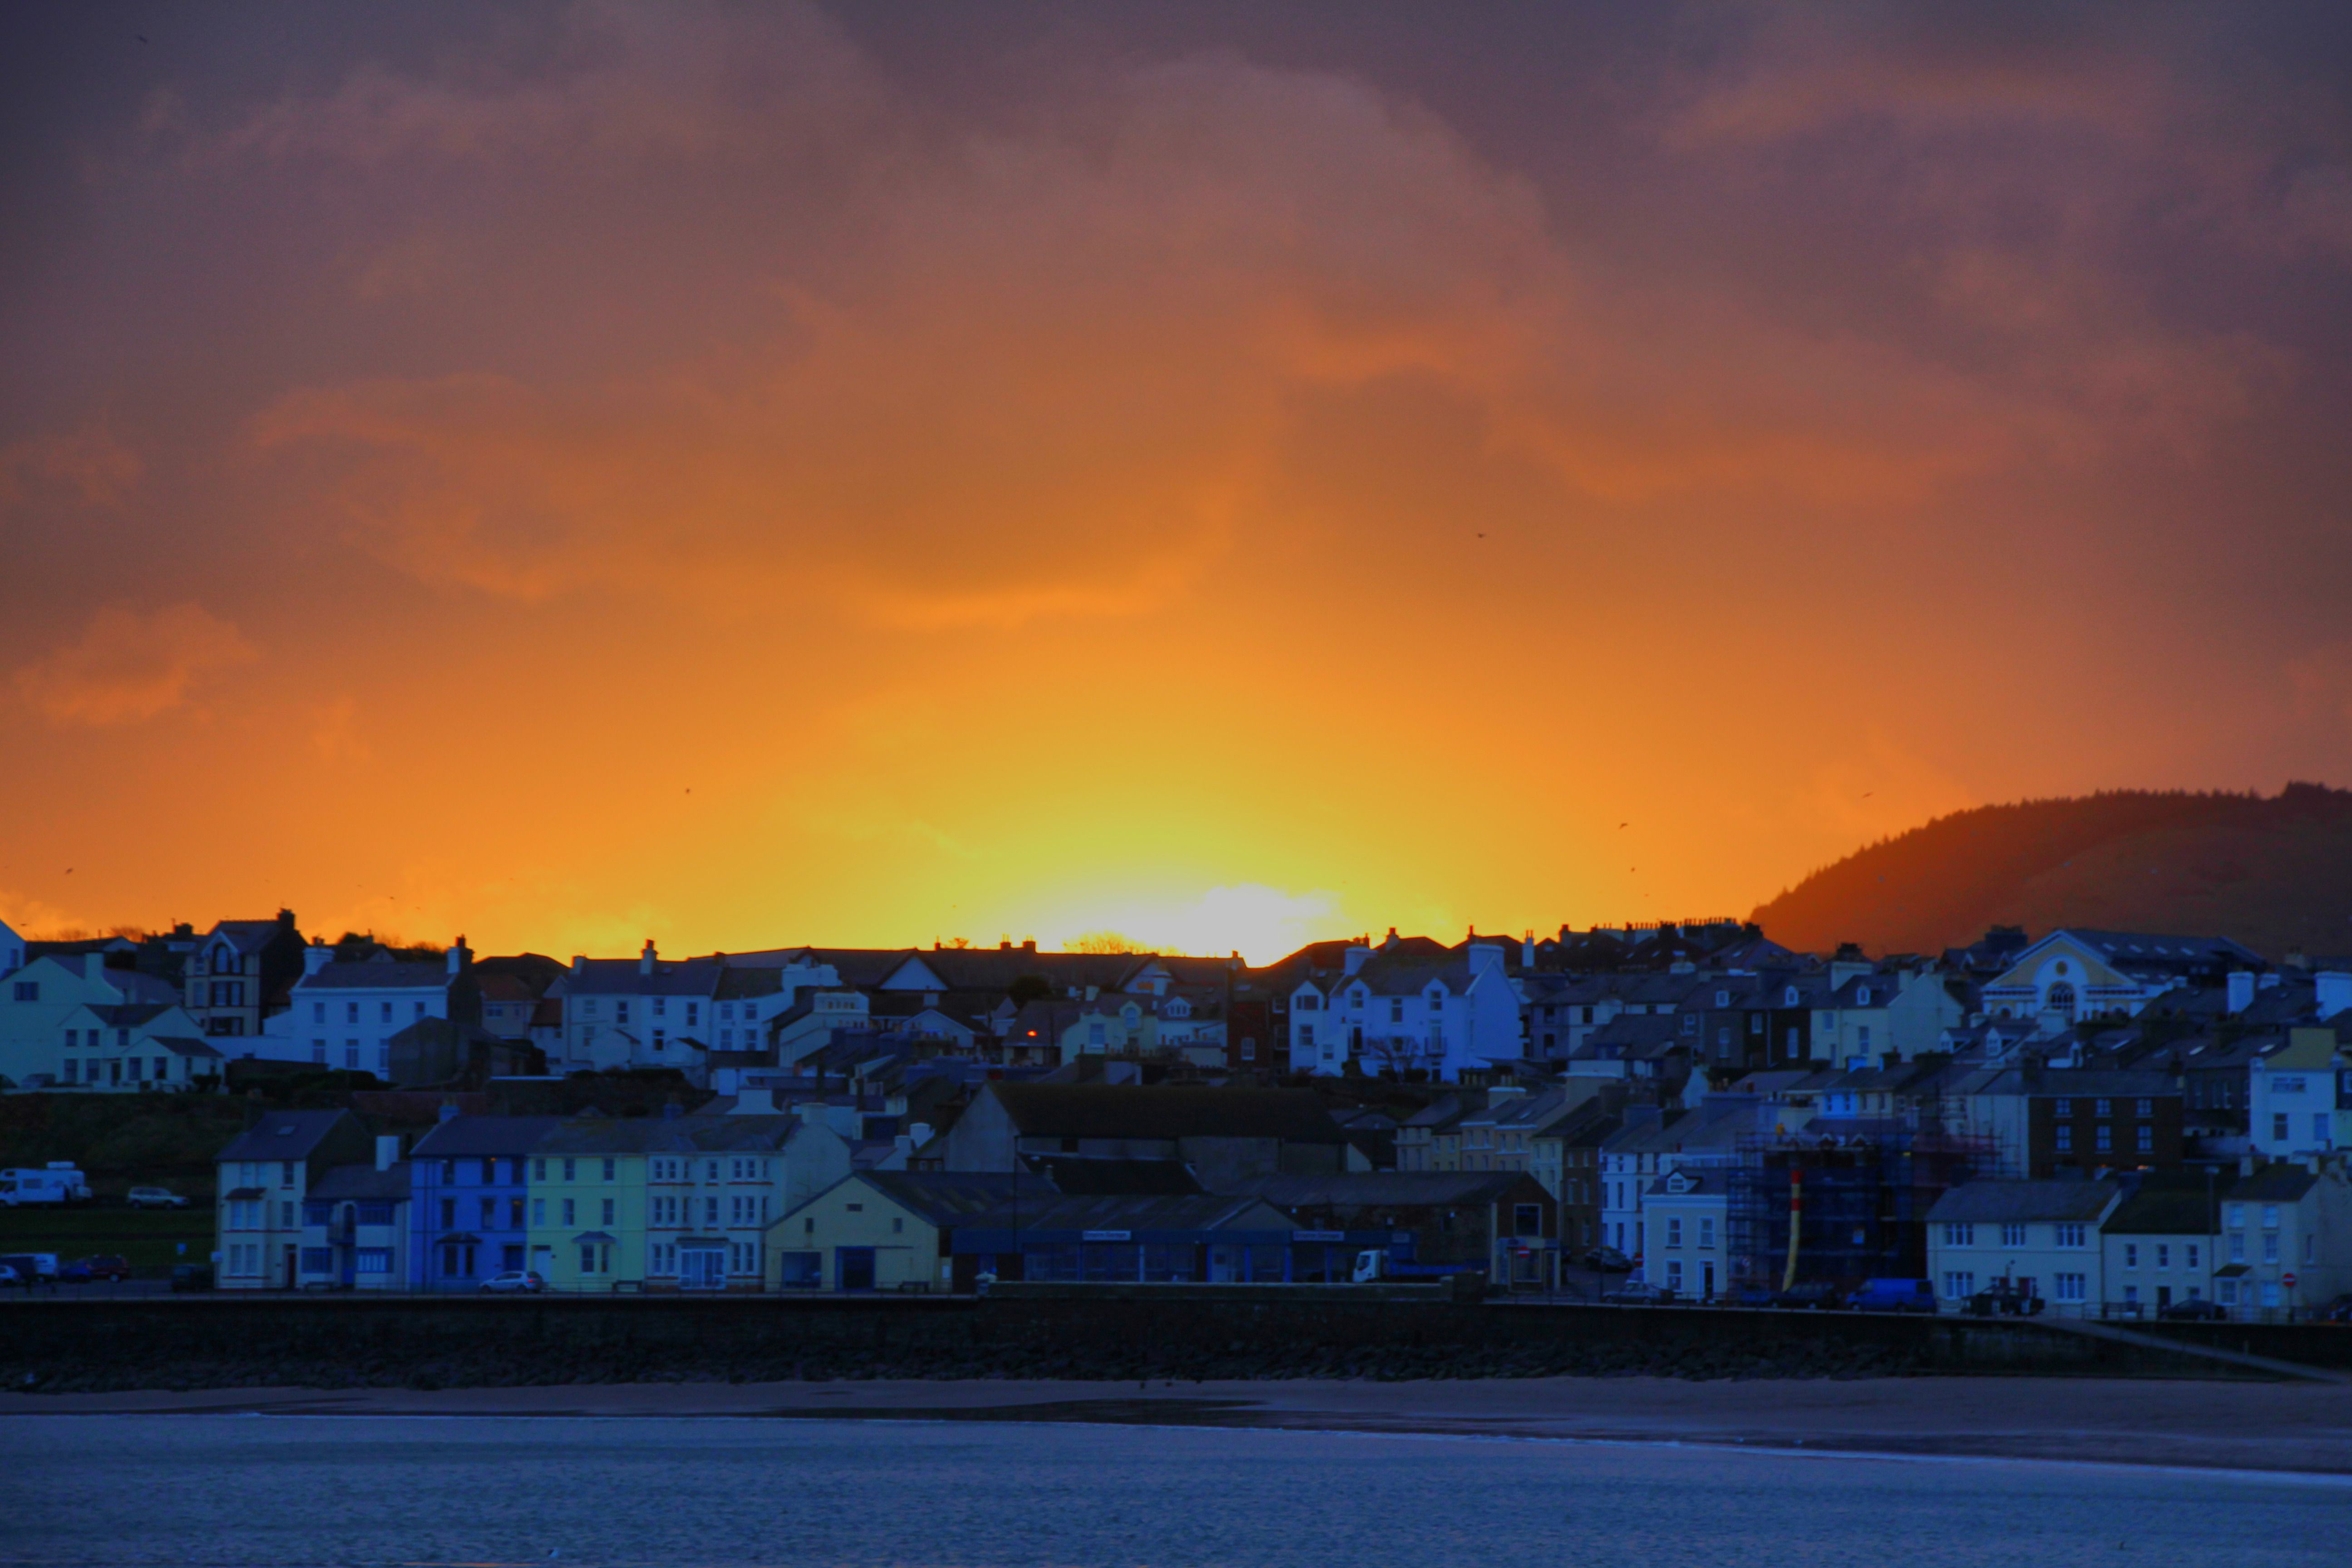 2nd Prize: Sunrise from the breakwater, by Dave Corkish